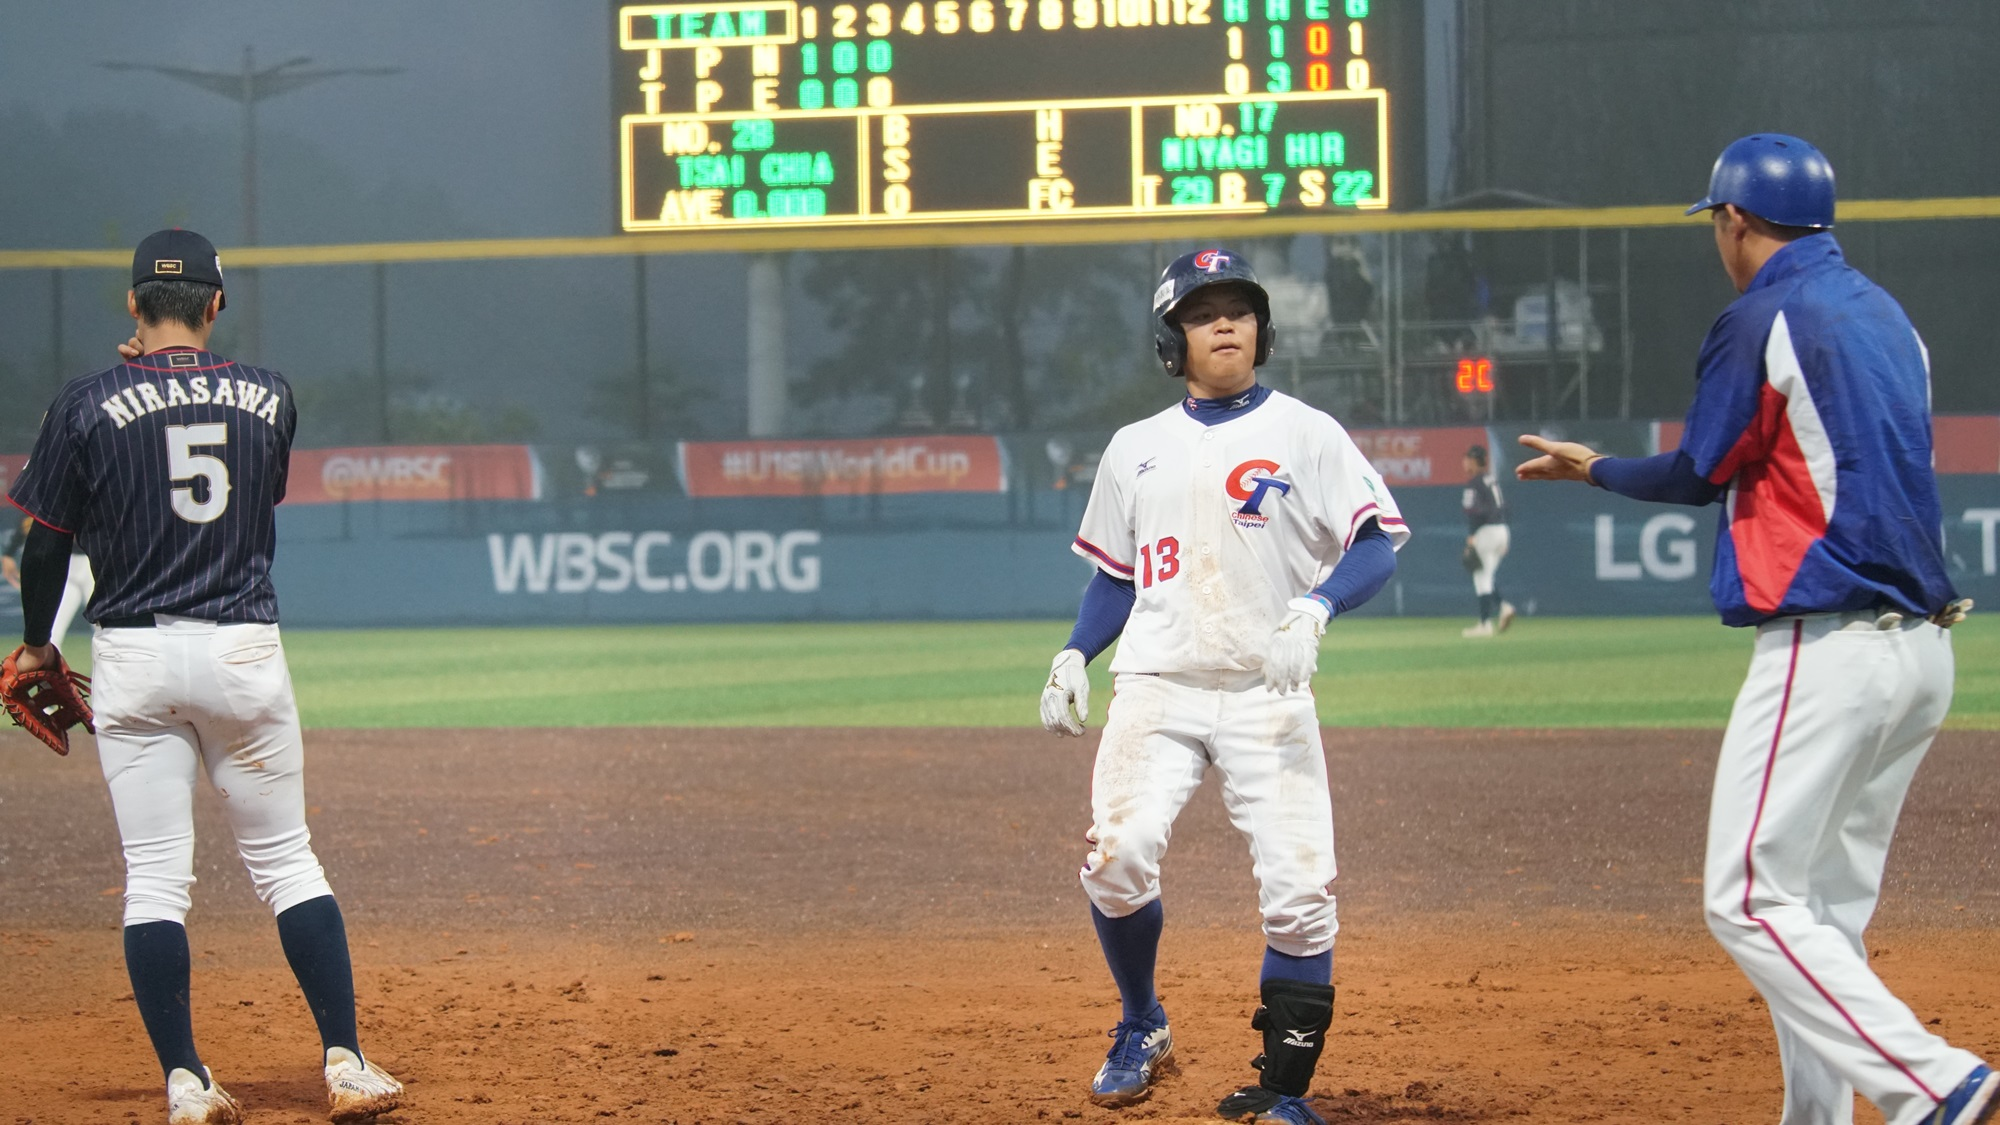 Chinese Taipei tied the game